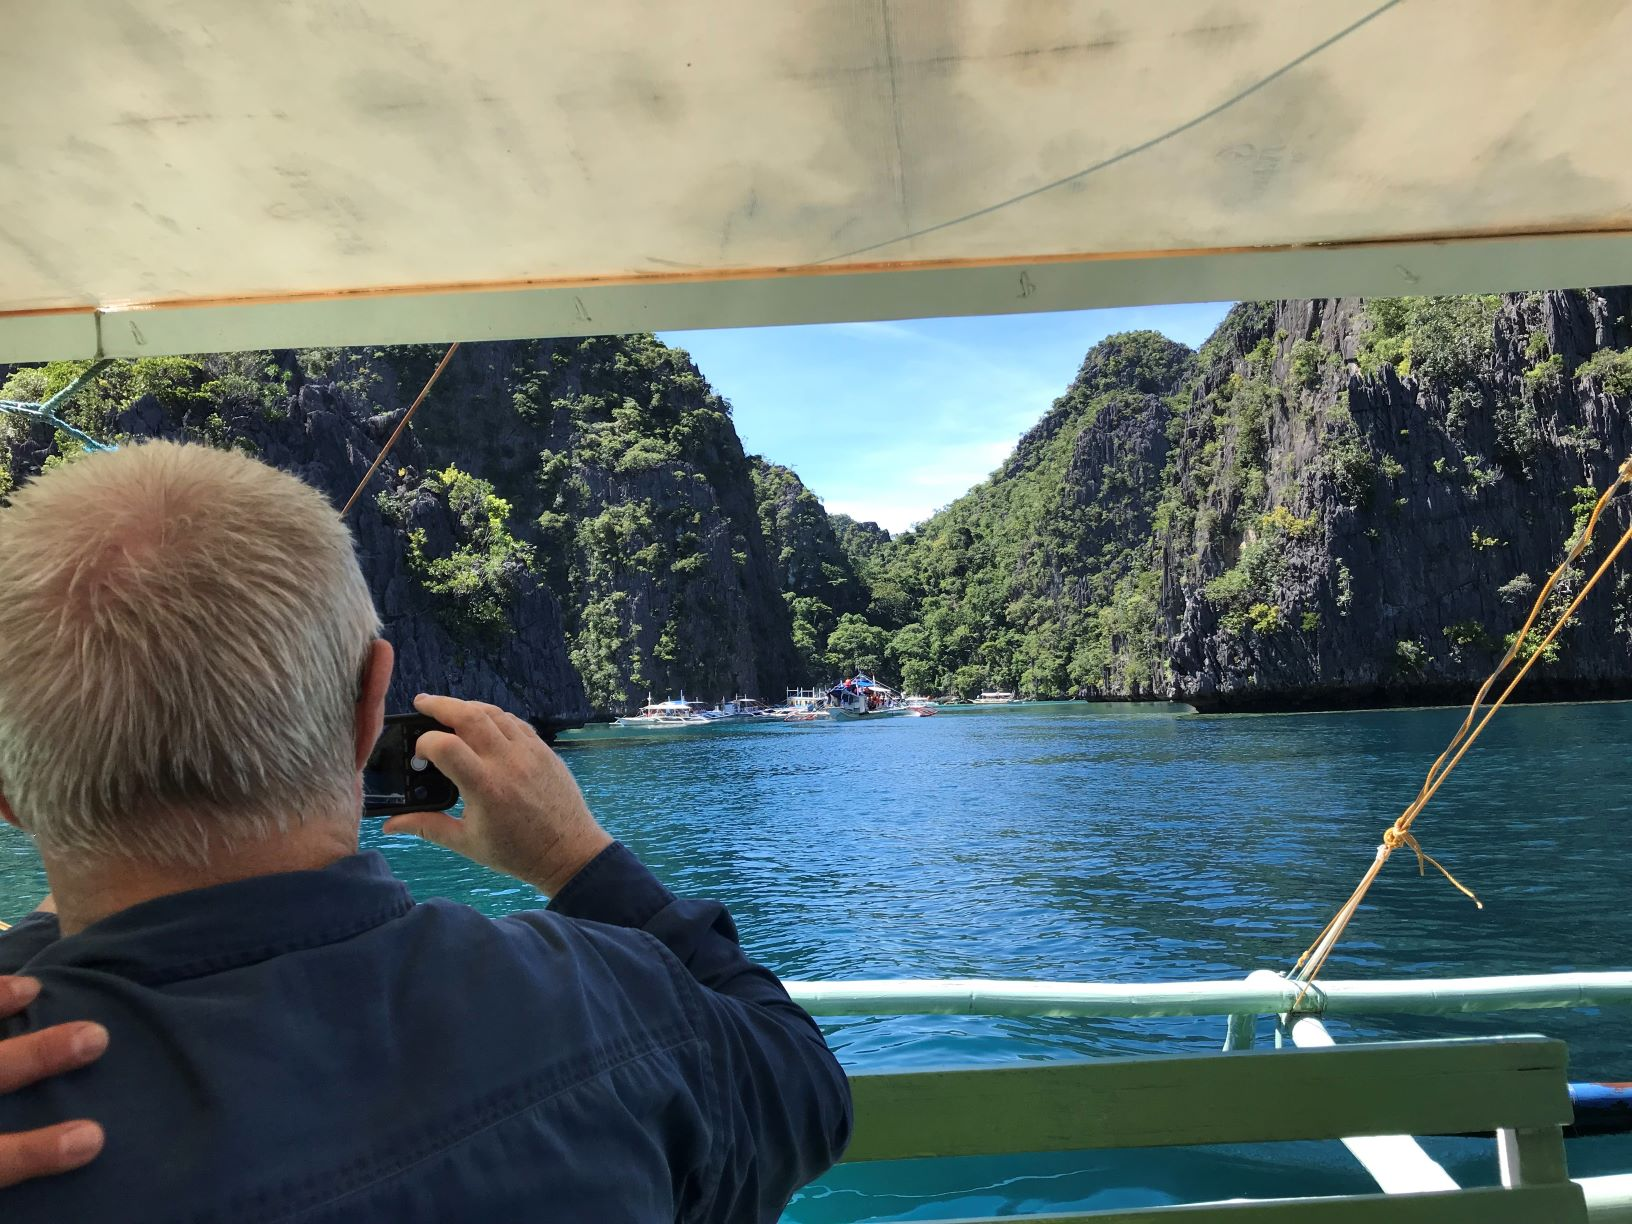 Philippines 2019 - 22 taking picture